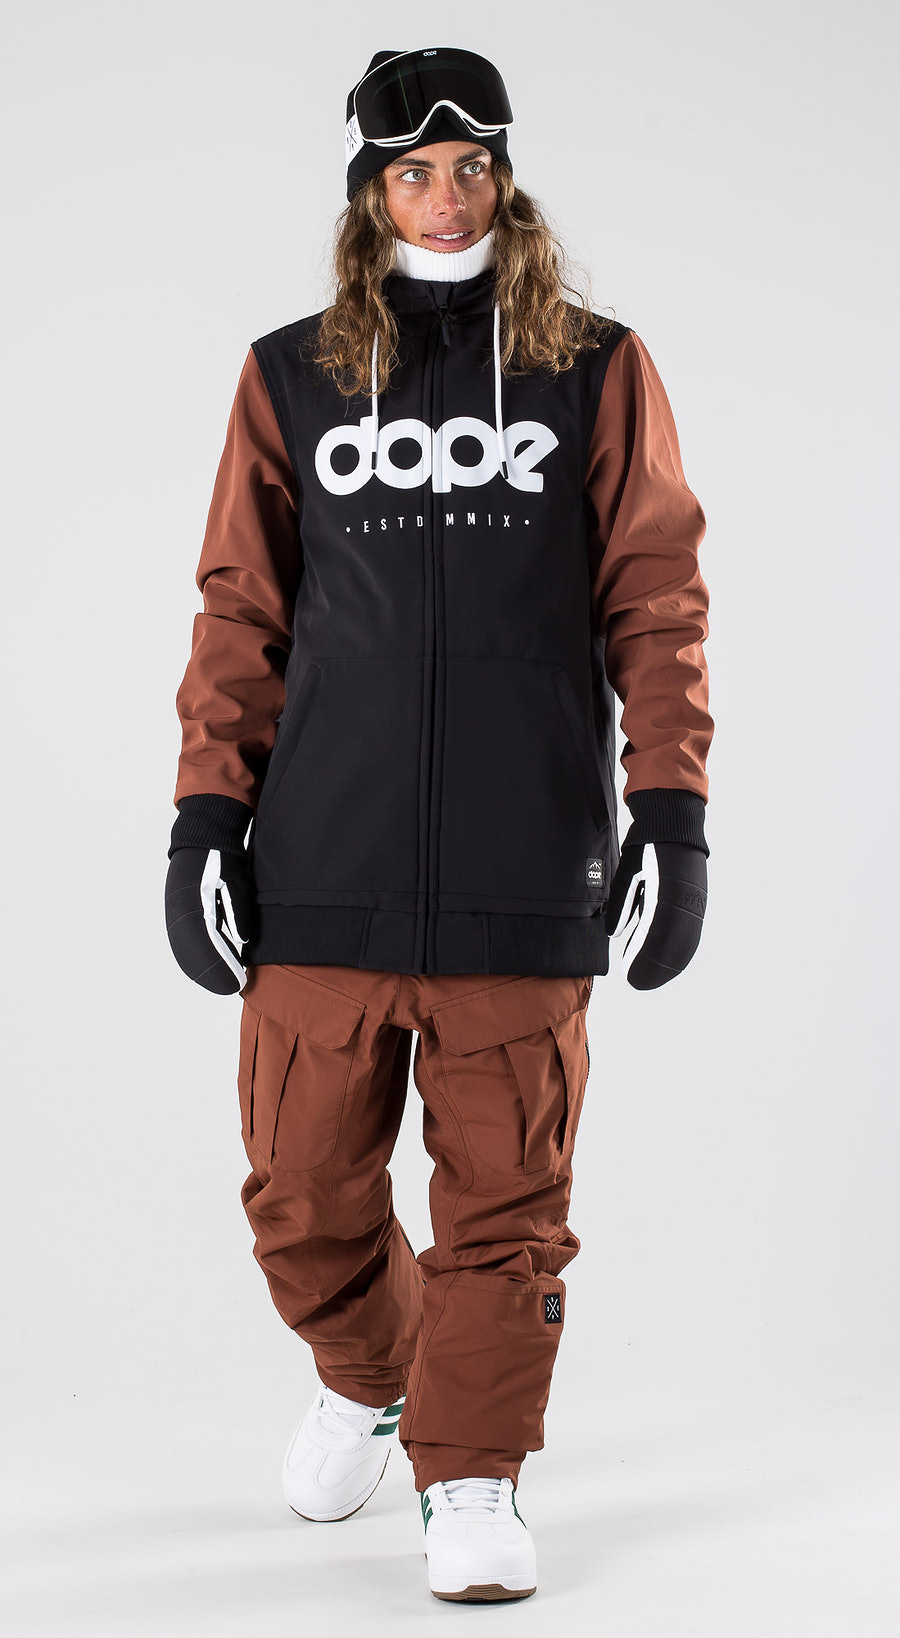 Dope Standard DO Black/Adobe Snowboardkläder Multi